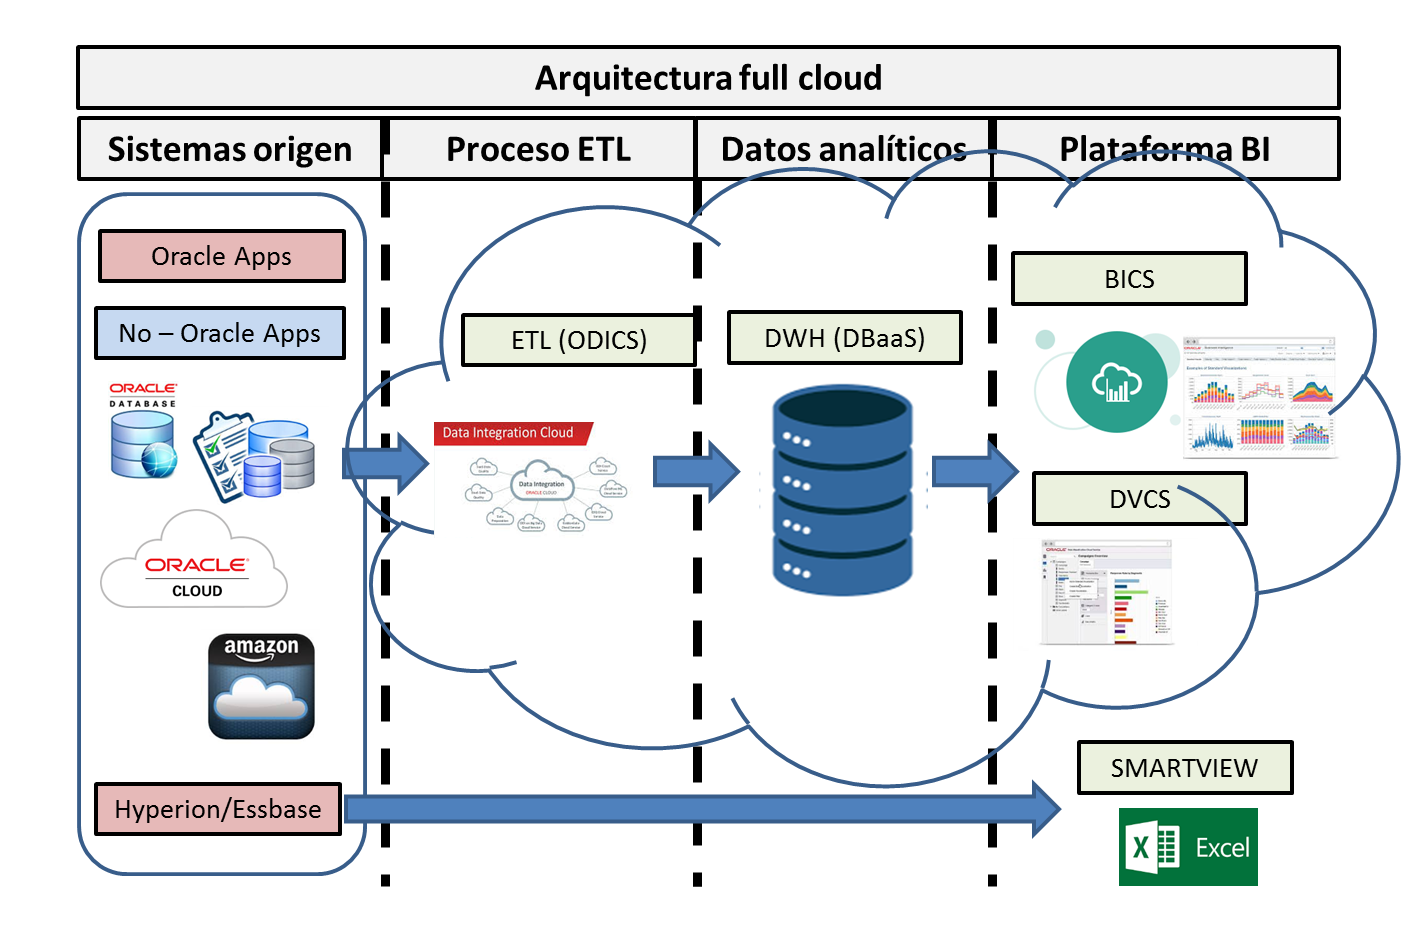 Arquitectura bi full cloud - neteris.png